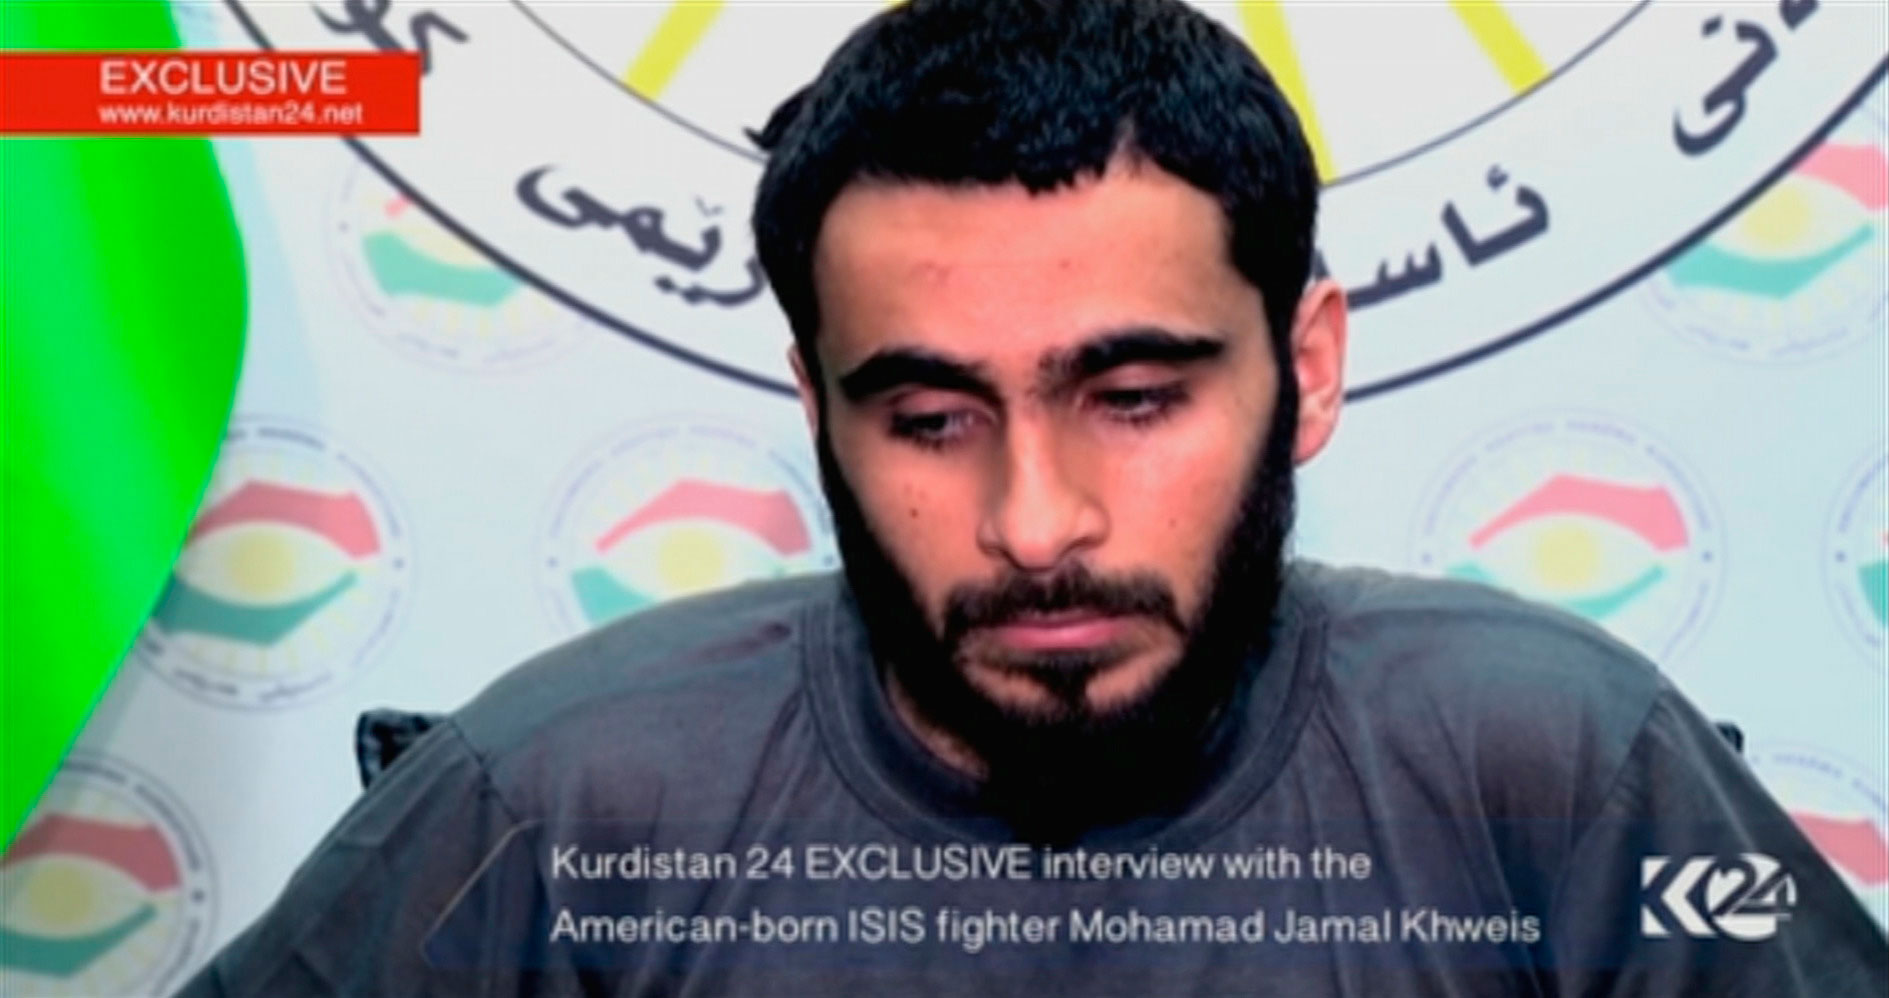 In this still image taken from video on March 16, 2016, a man whose driver's license identifies him as an American speaks during an interview after he said he joined ISIS but later left and was captured by Kurdish forces.